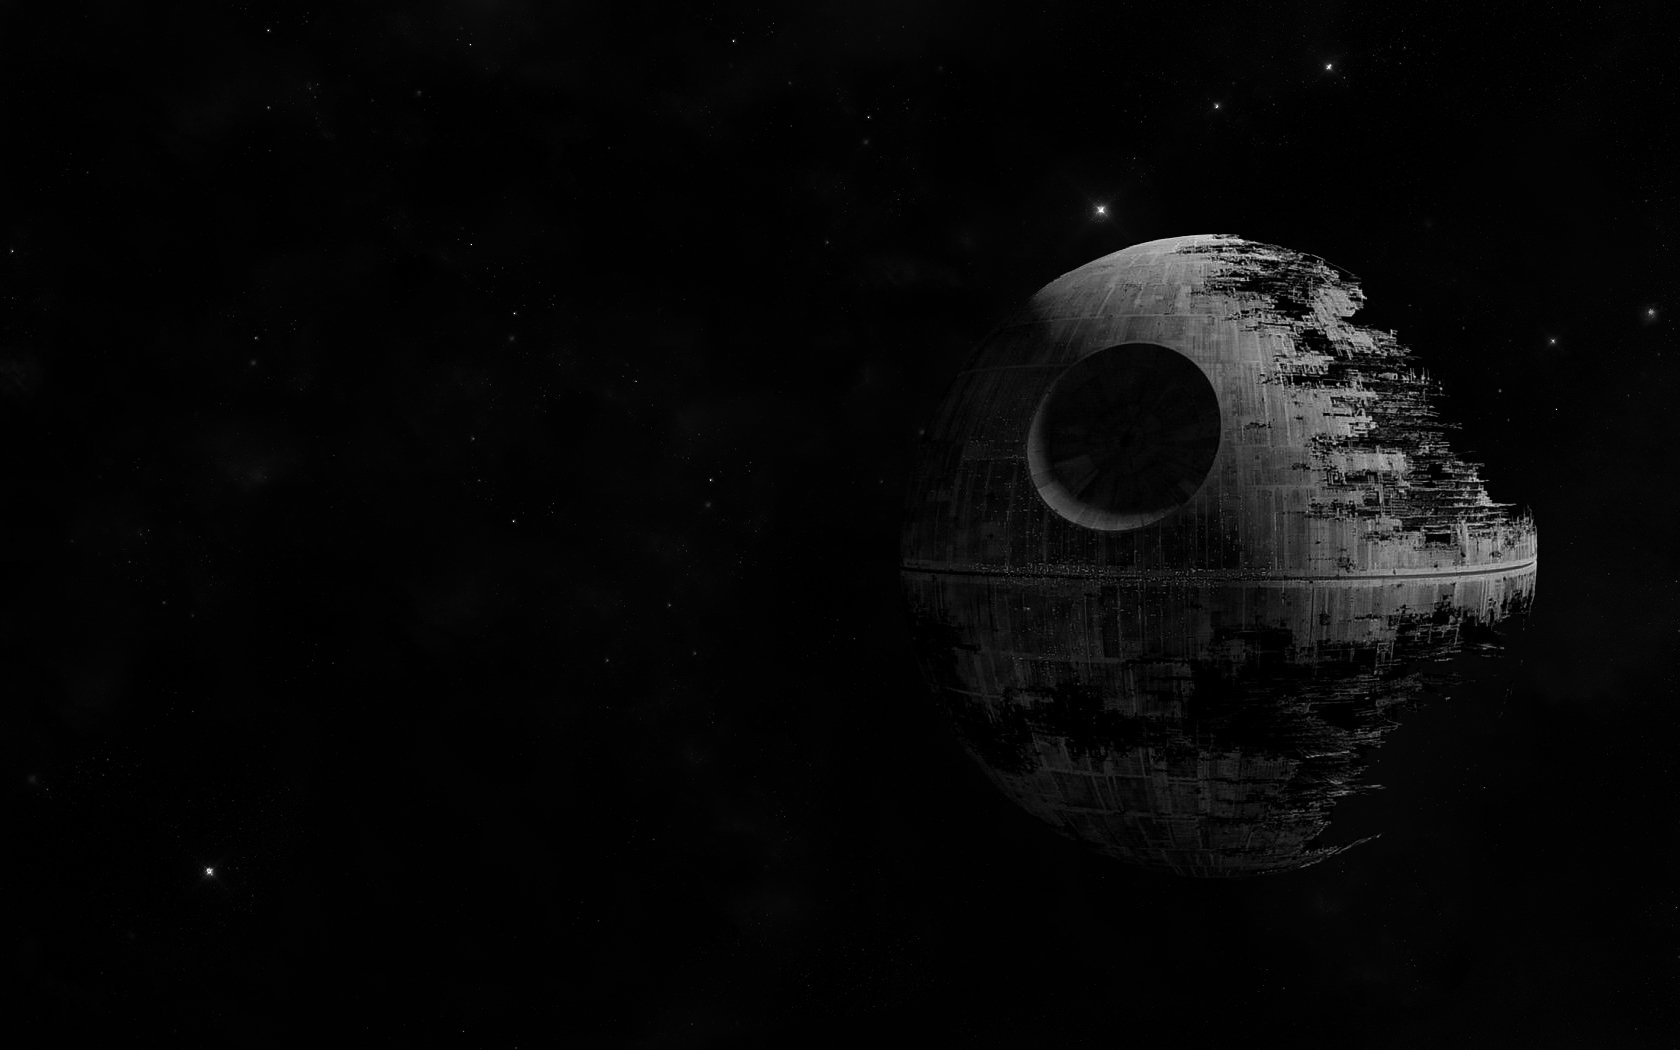 the death star was the empire's ultimate weapon fond d'écran and